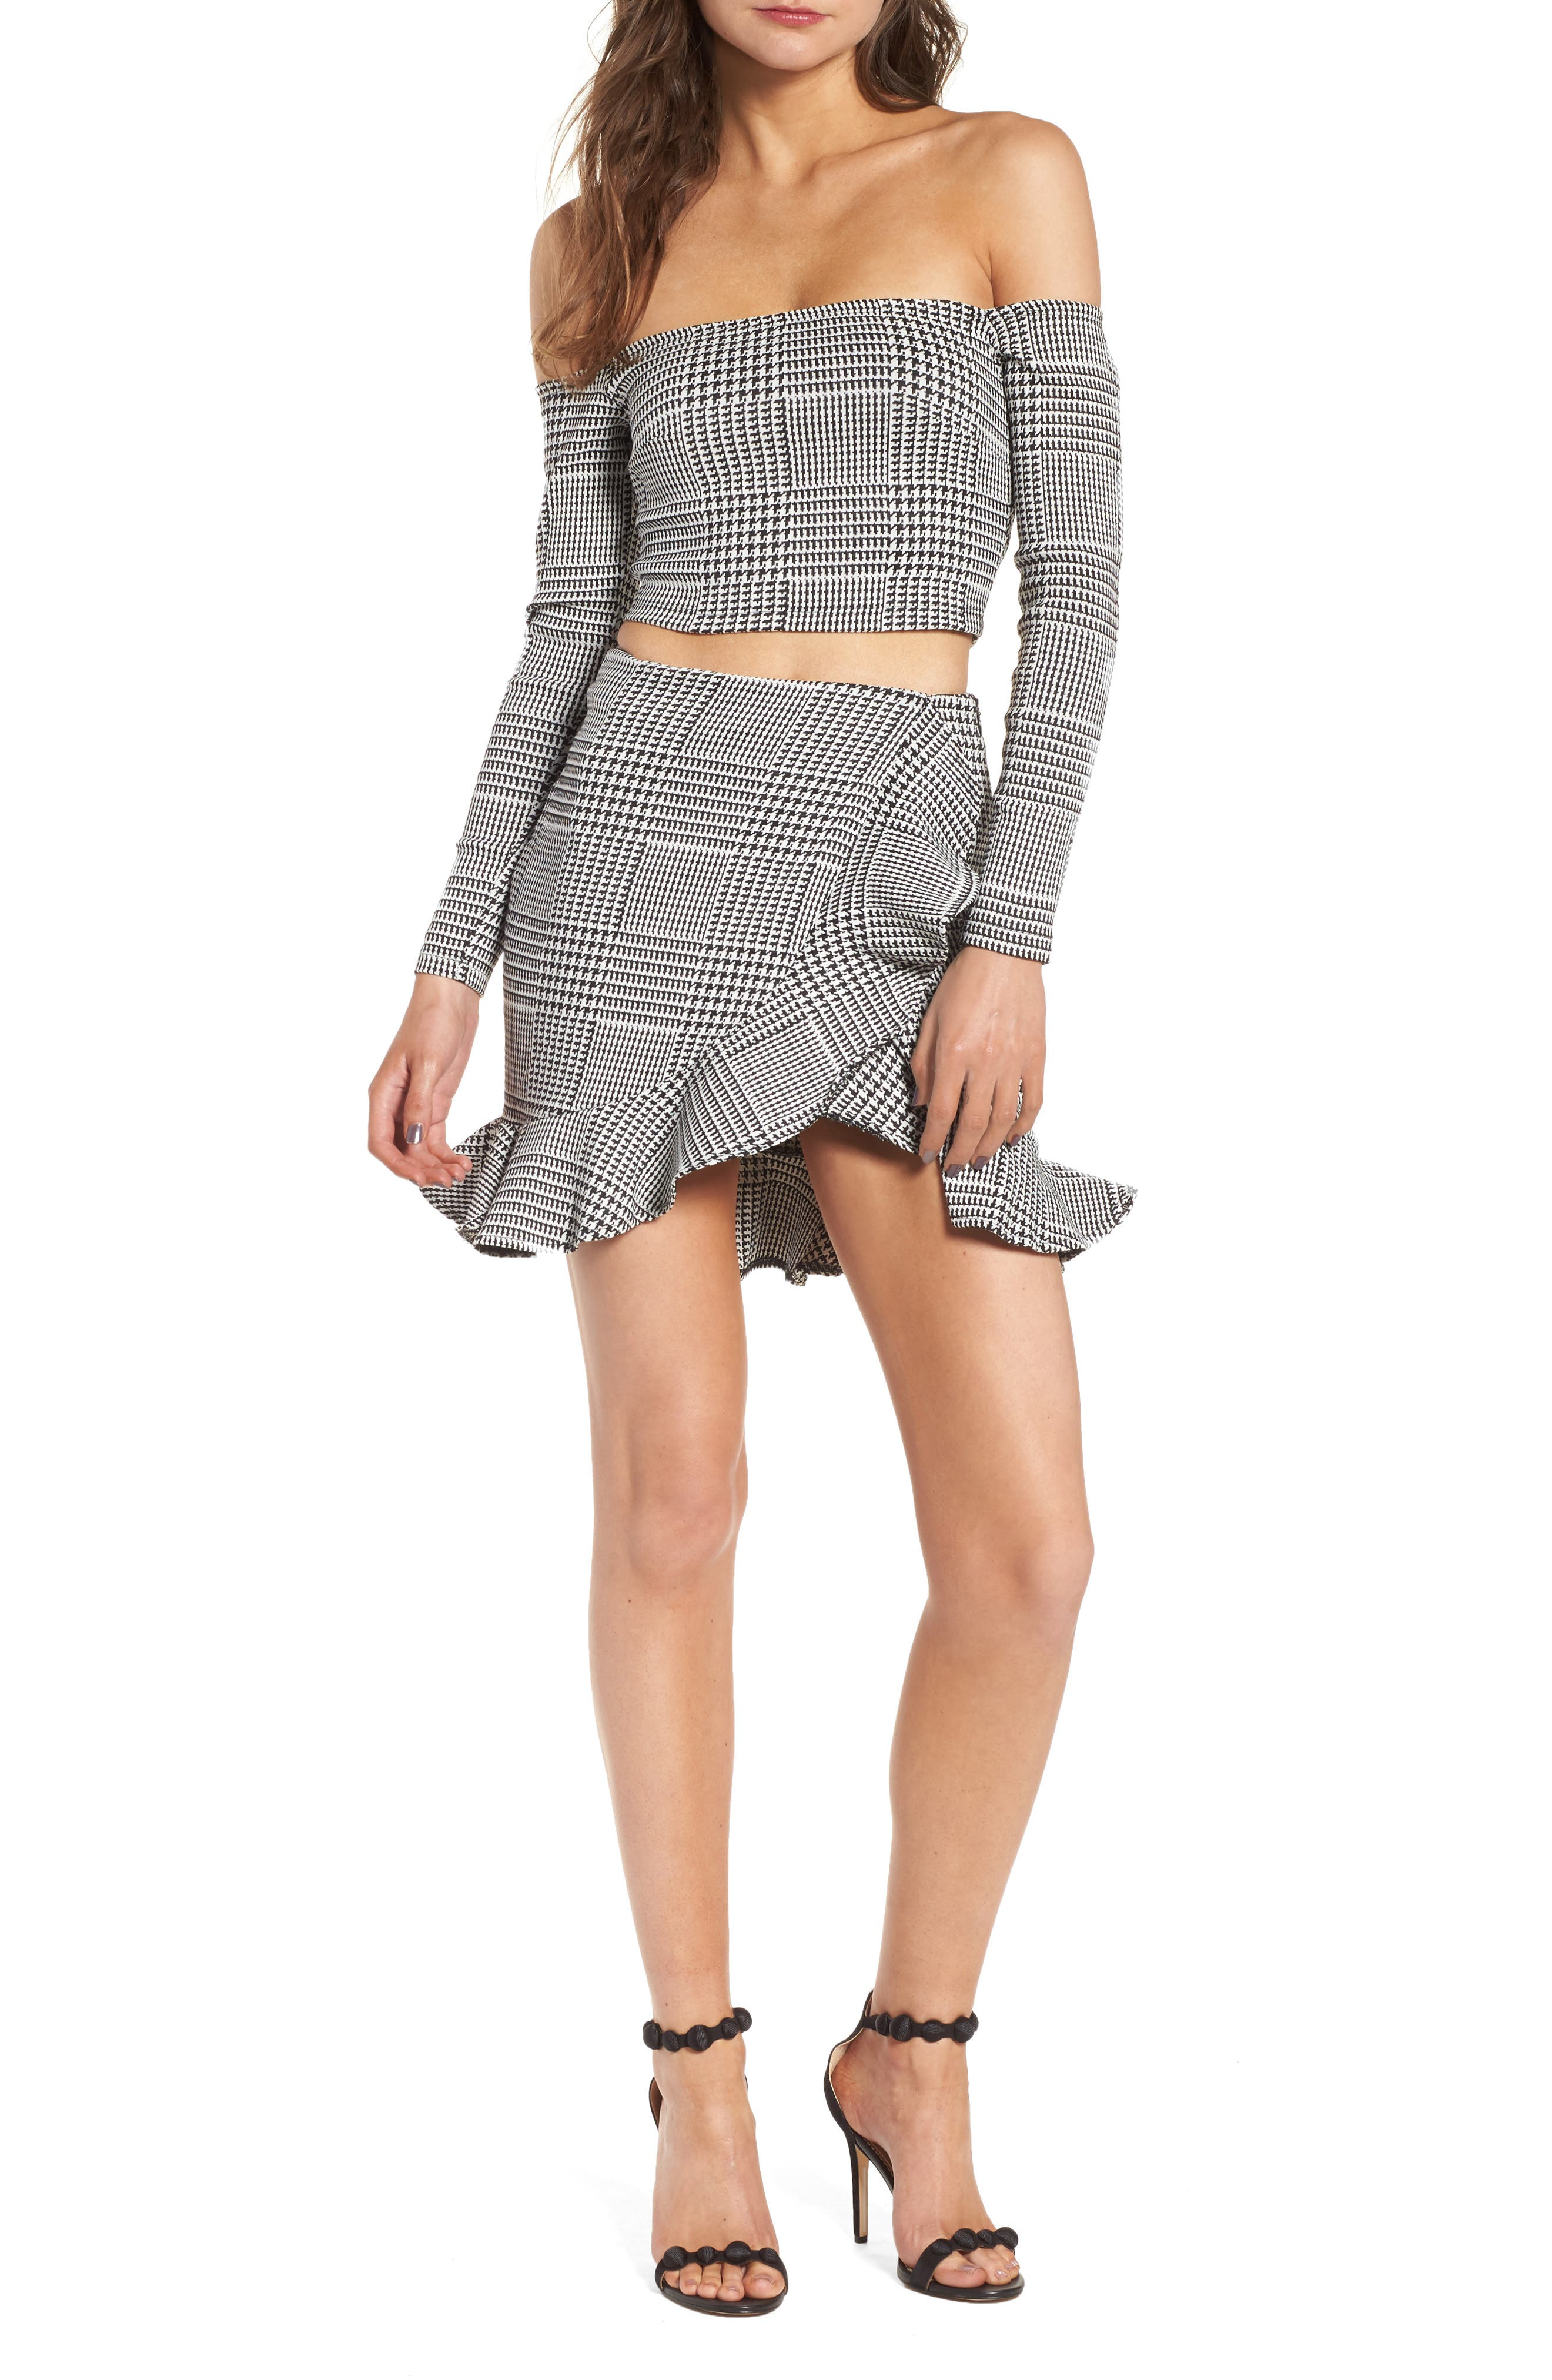 Affection Ruffle Houndstooth Skirt,                             Alternate thumbnail 2, color,                             Houndstooth Plaid